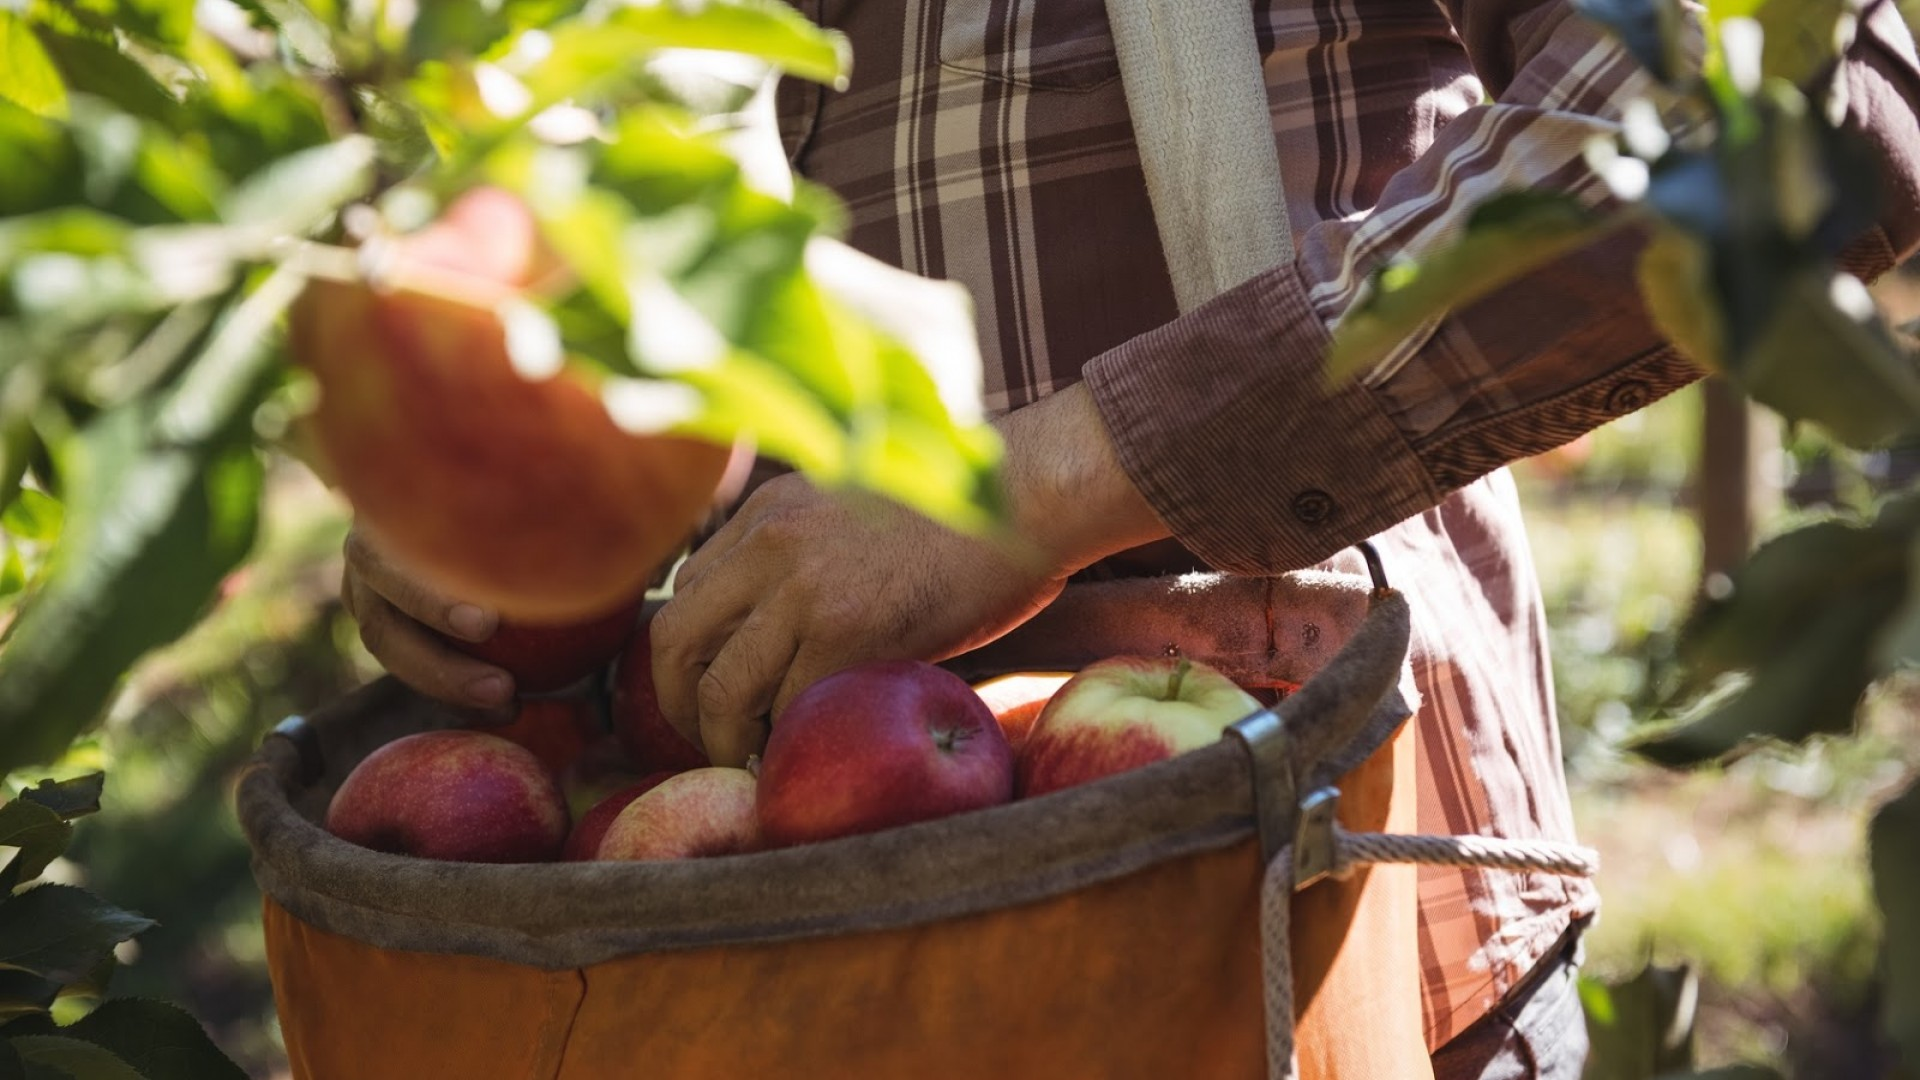 A farmworker collecting apples in an orange basket